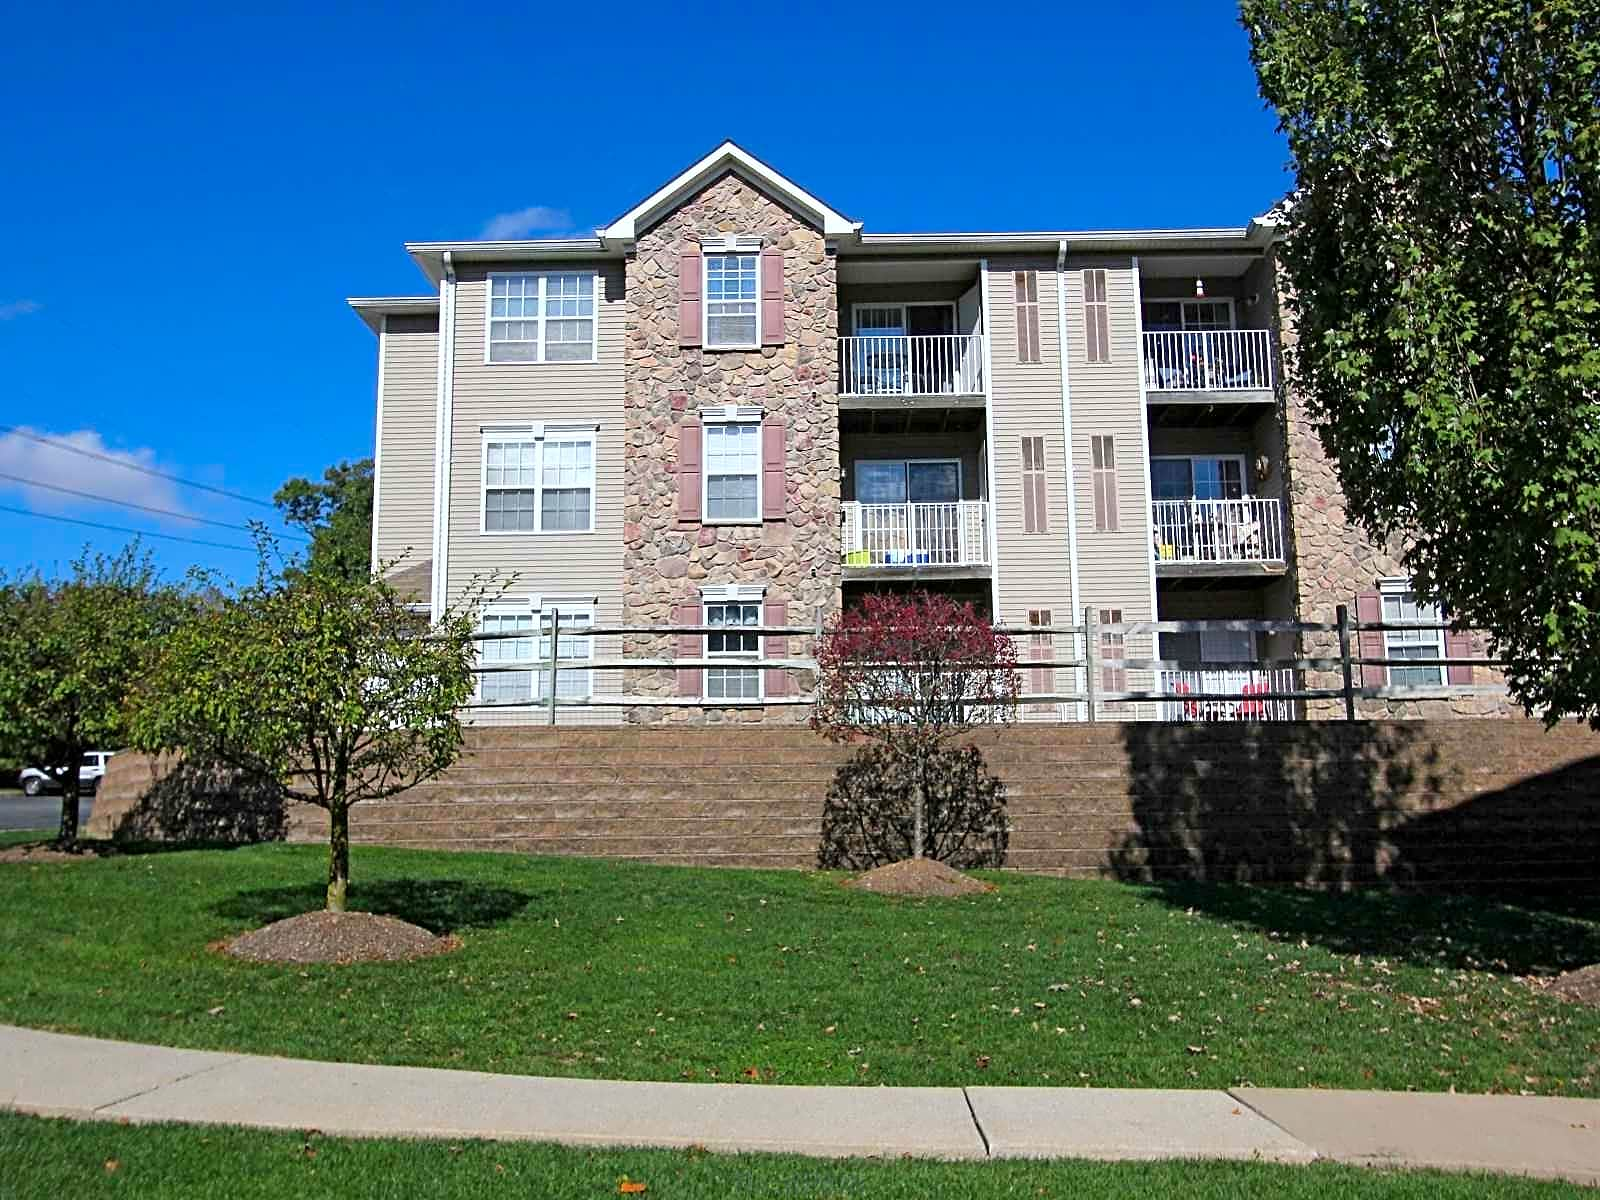 Affordable Apartments In Allentown Pa